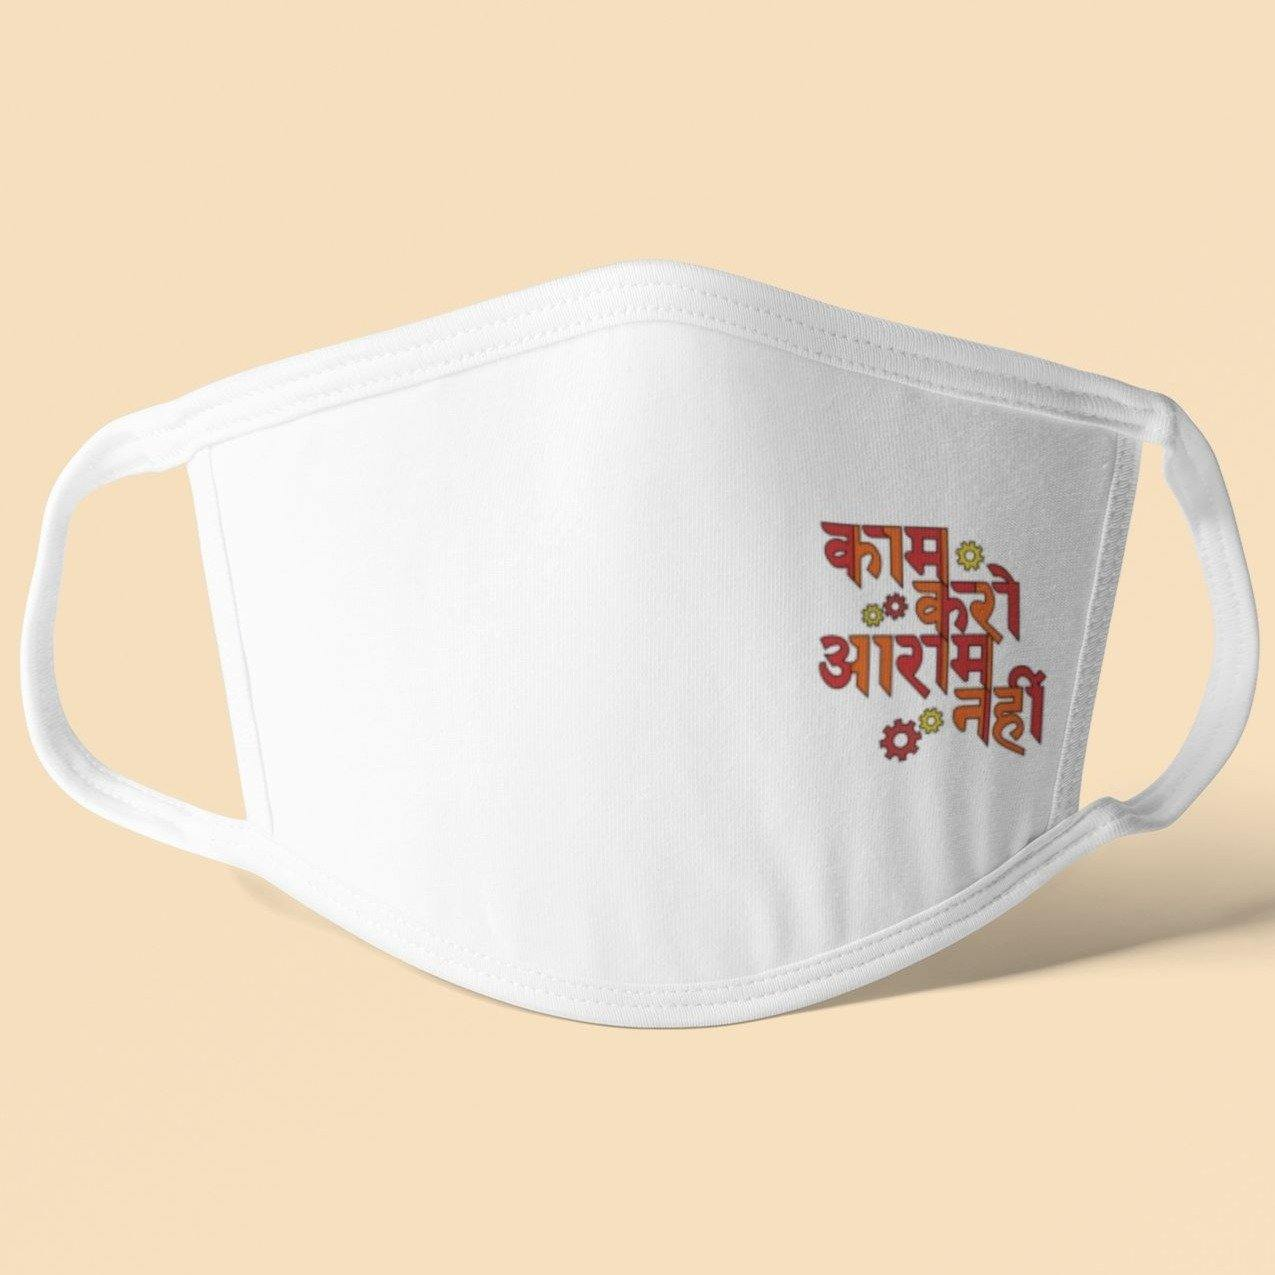 Pack of 3 Masks - Set 8 - Daily Suvichar Store